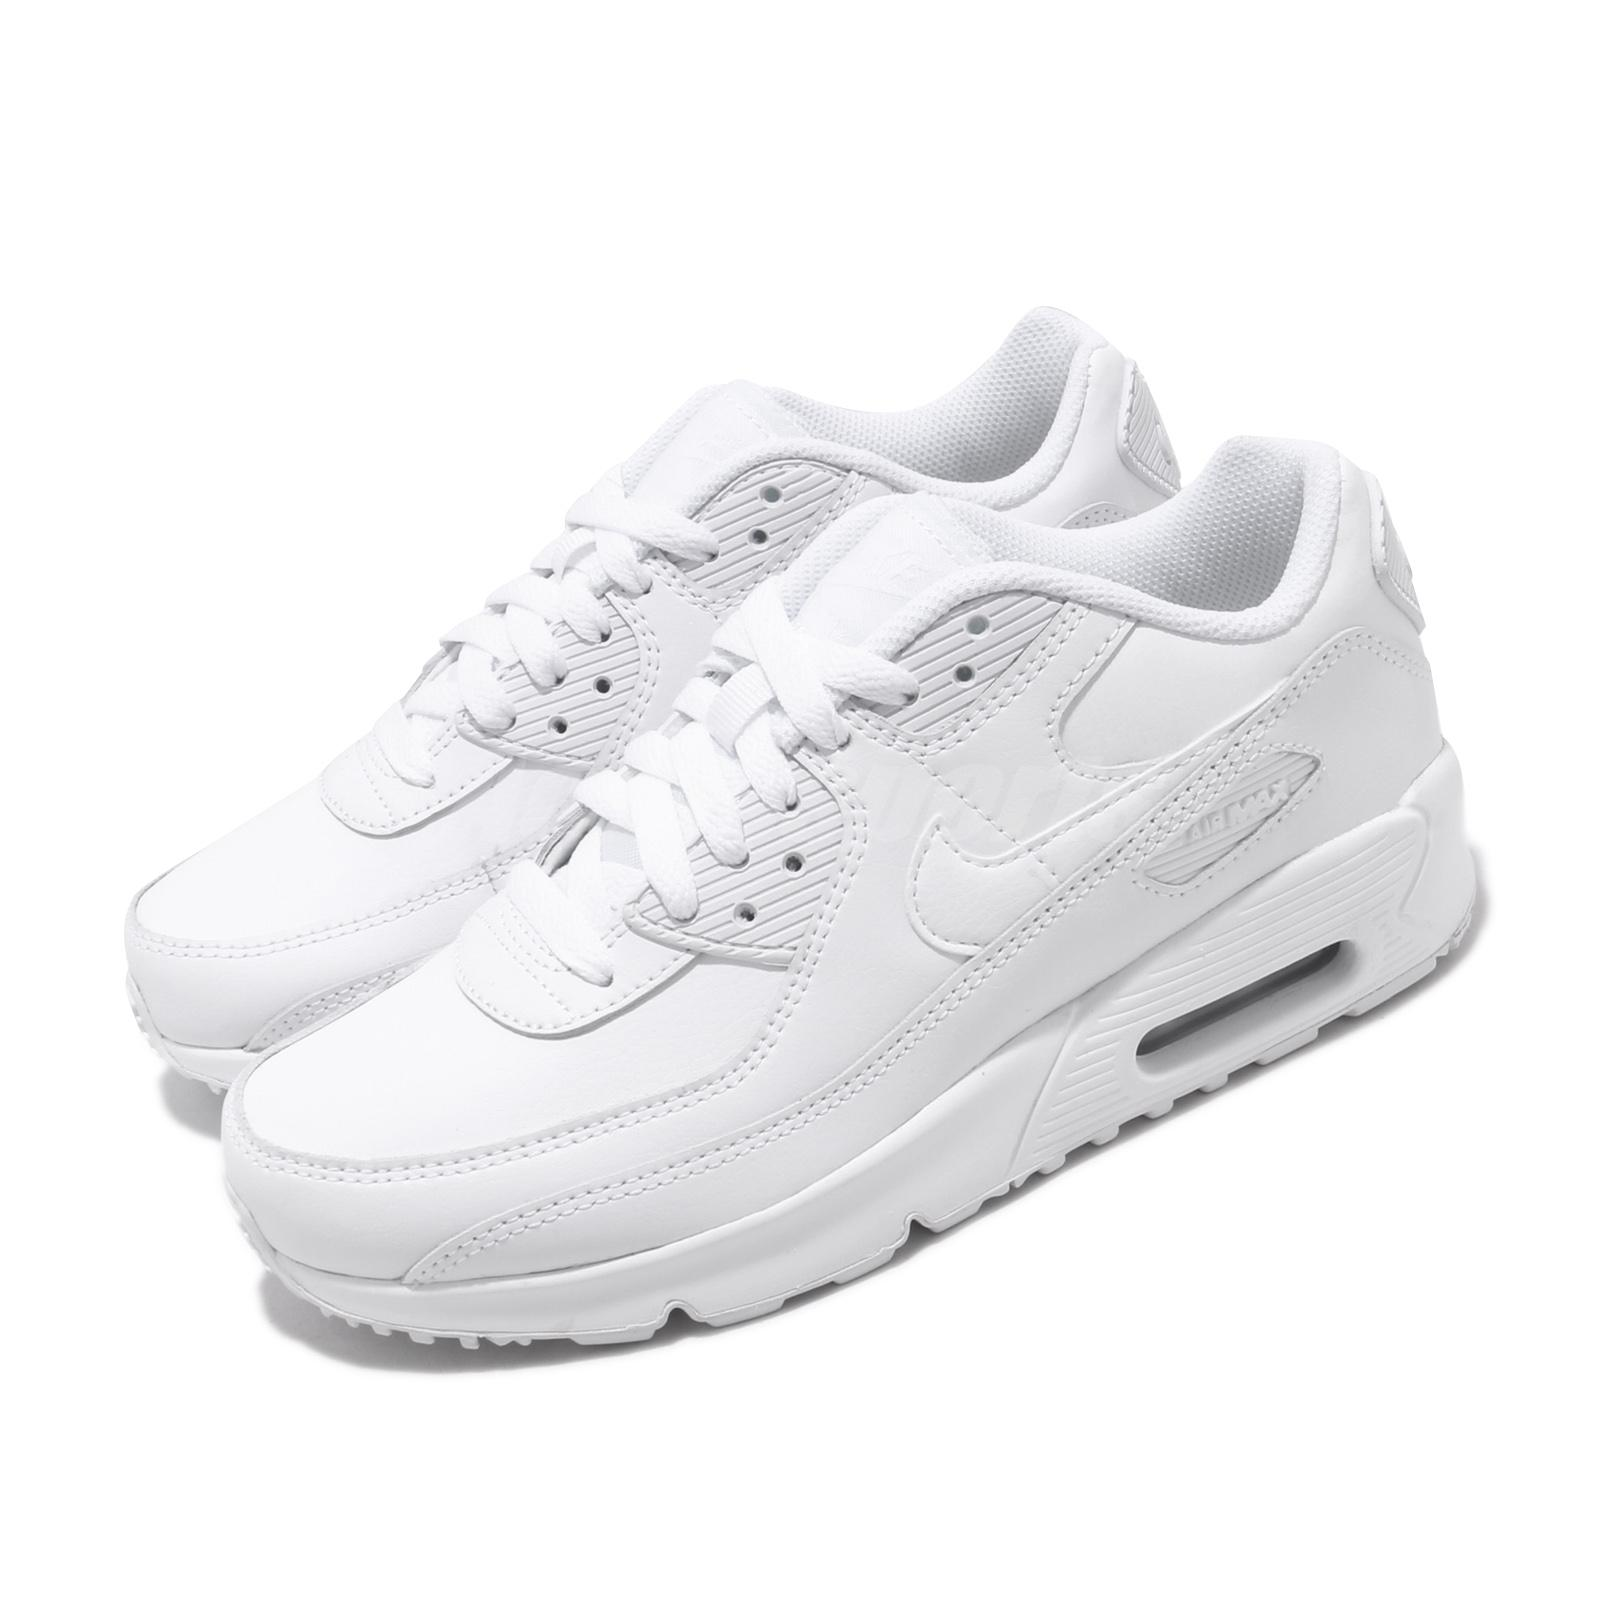 CD6864-100 Youth Nike Air Max 90 Leather White